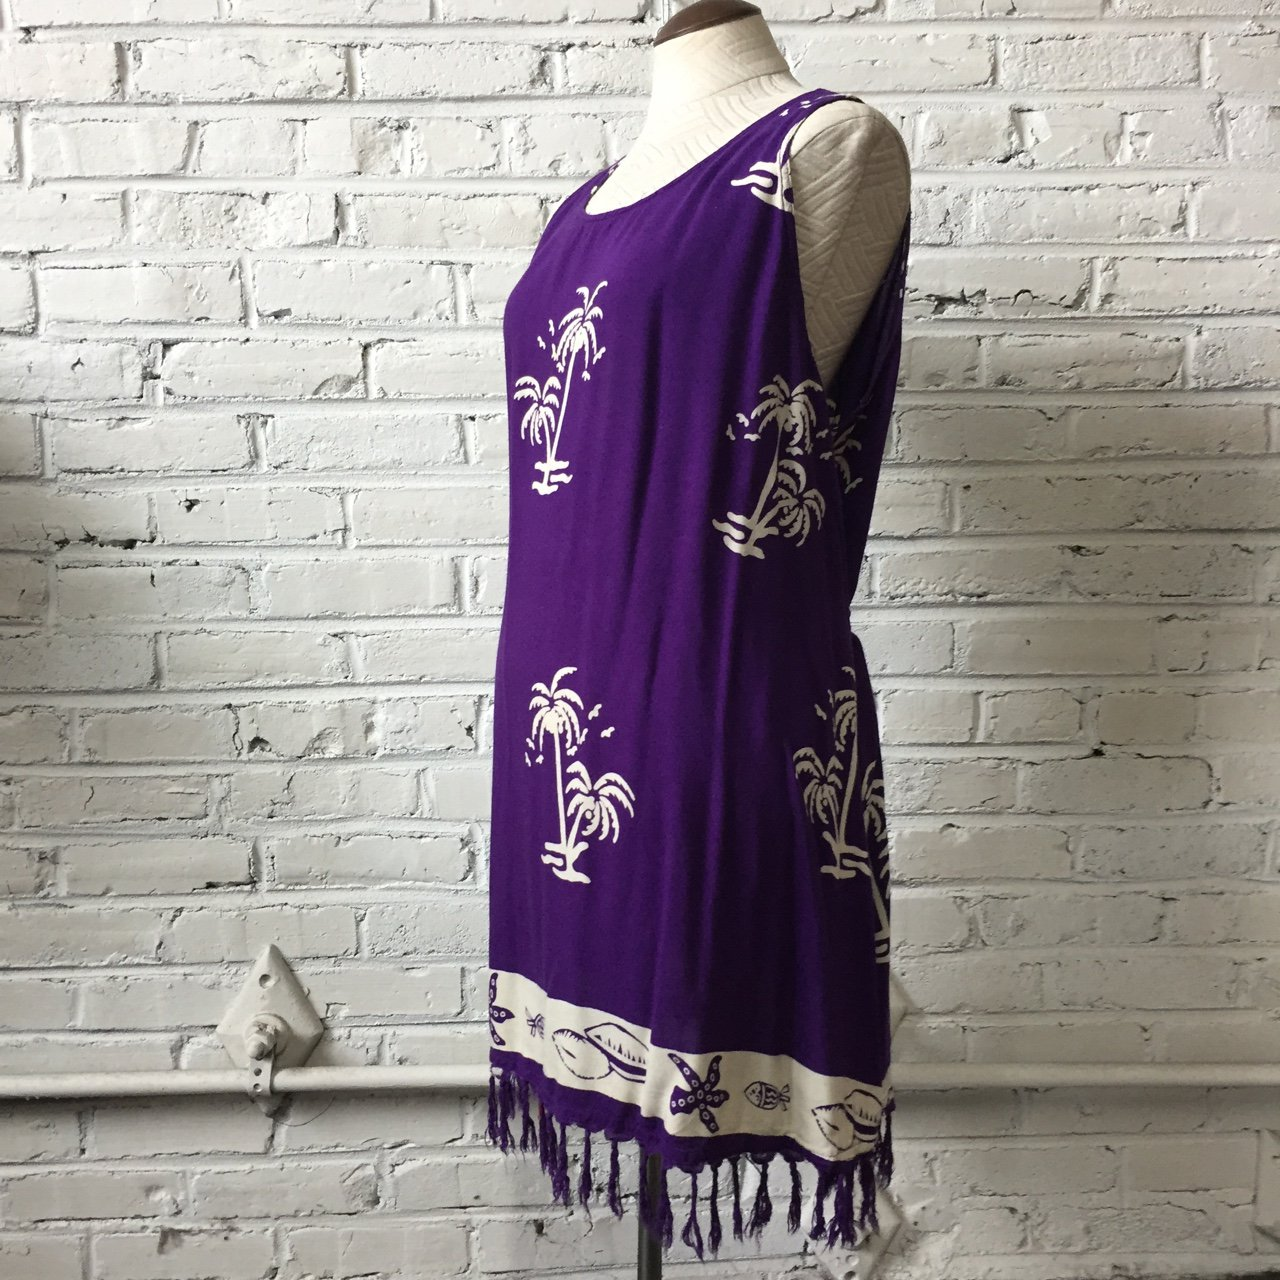 61cbc40a8580 Soft and lux purple batik style summer vacation dress by fun - Depop